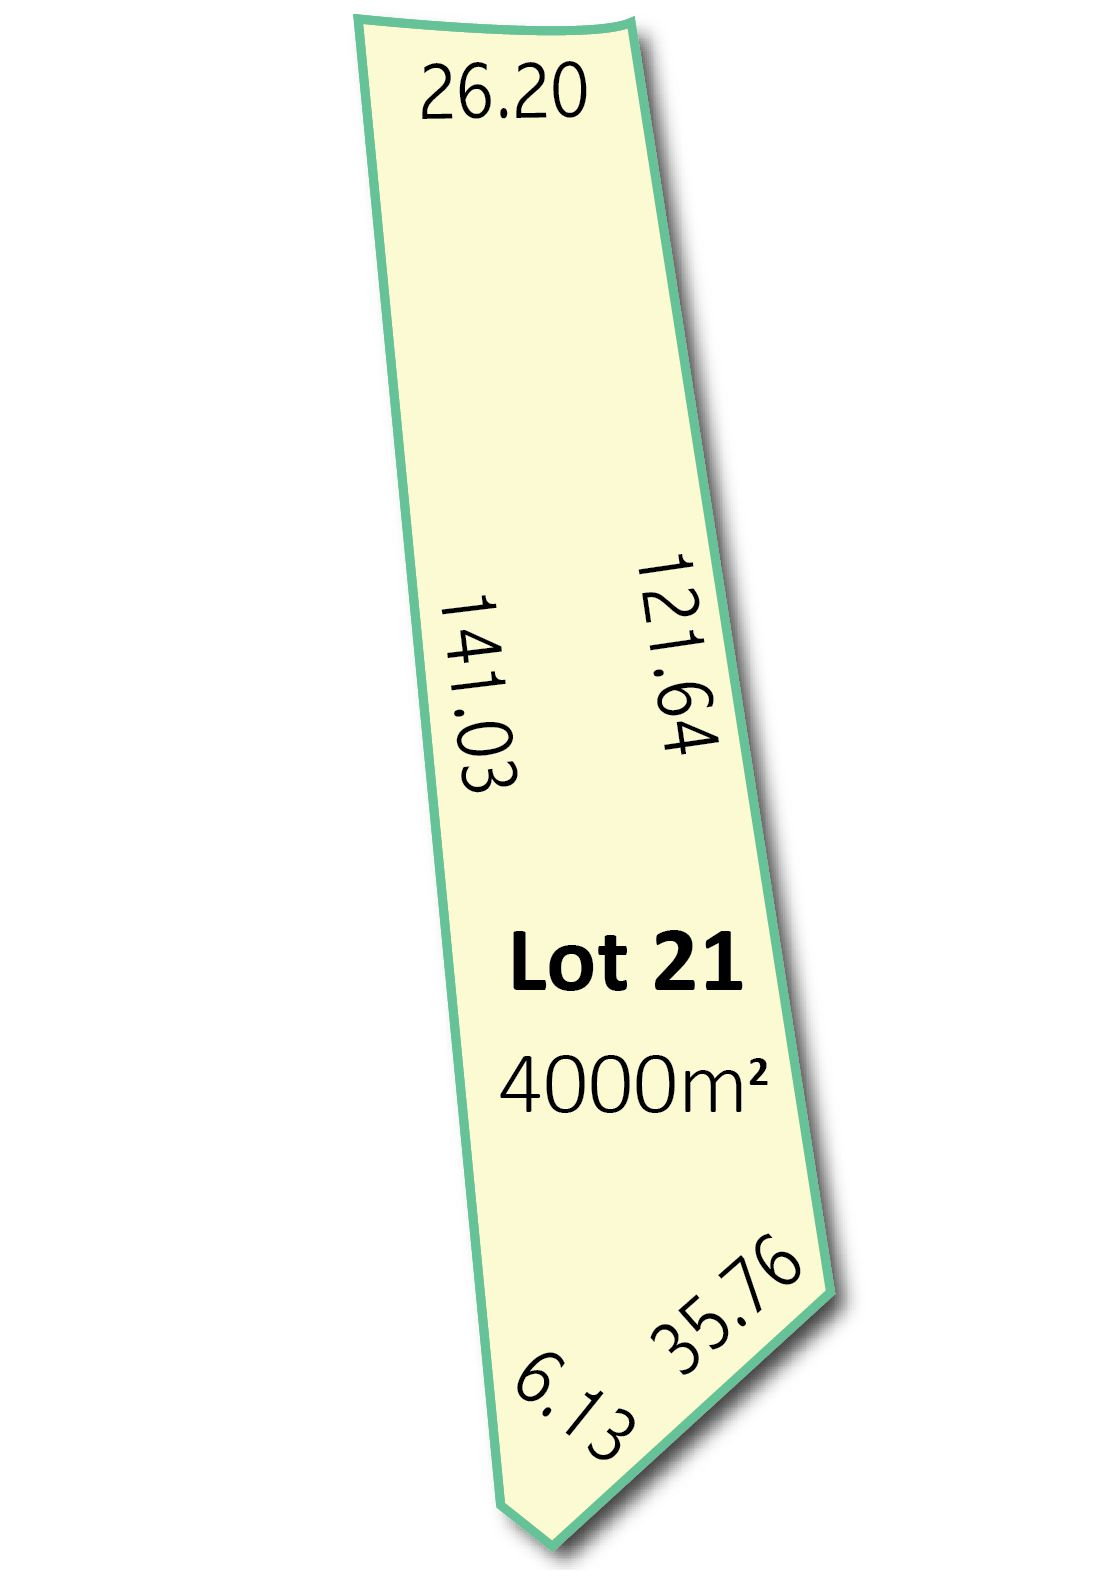 lot 21 Bluebell close